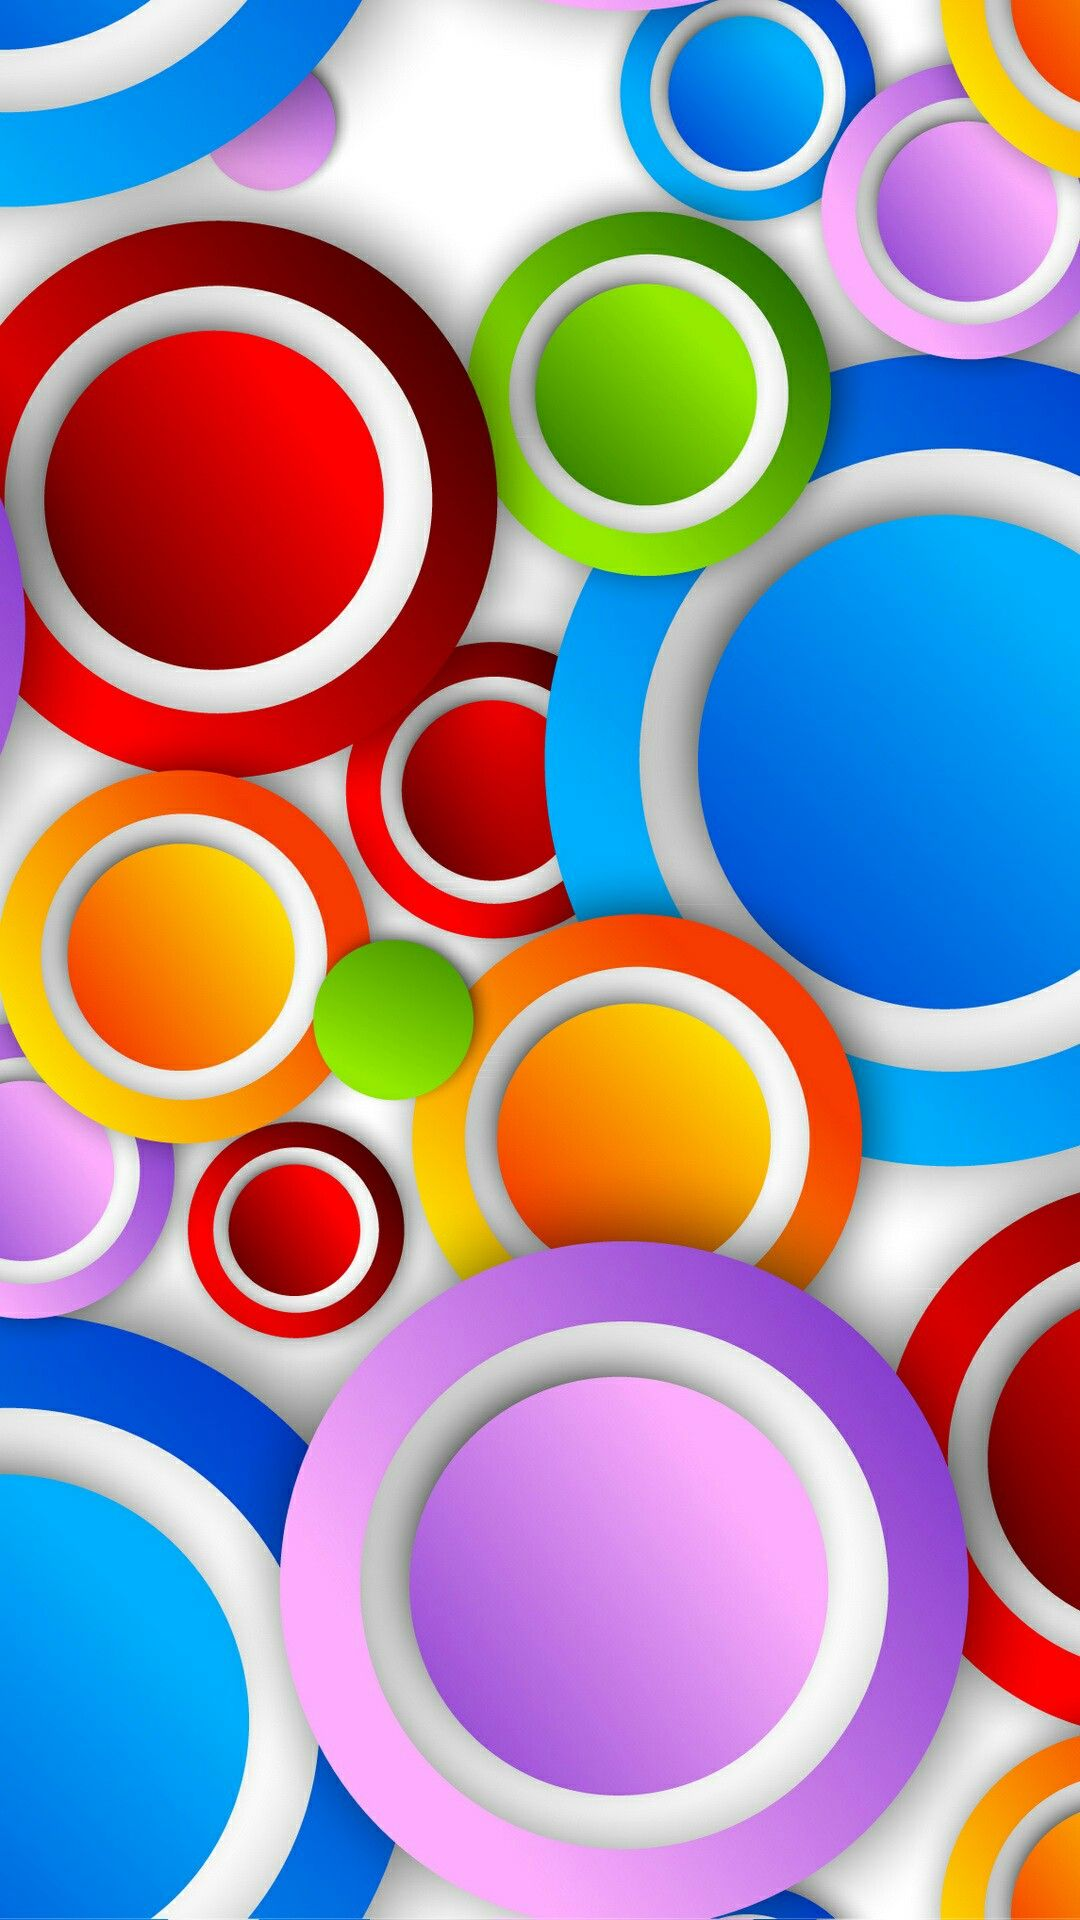 Free Colorful Geometric Wallpaper: Colorful Circles With White Trim Wallpaper